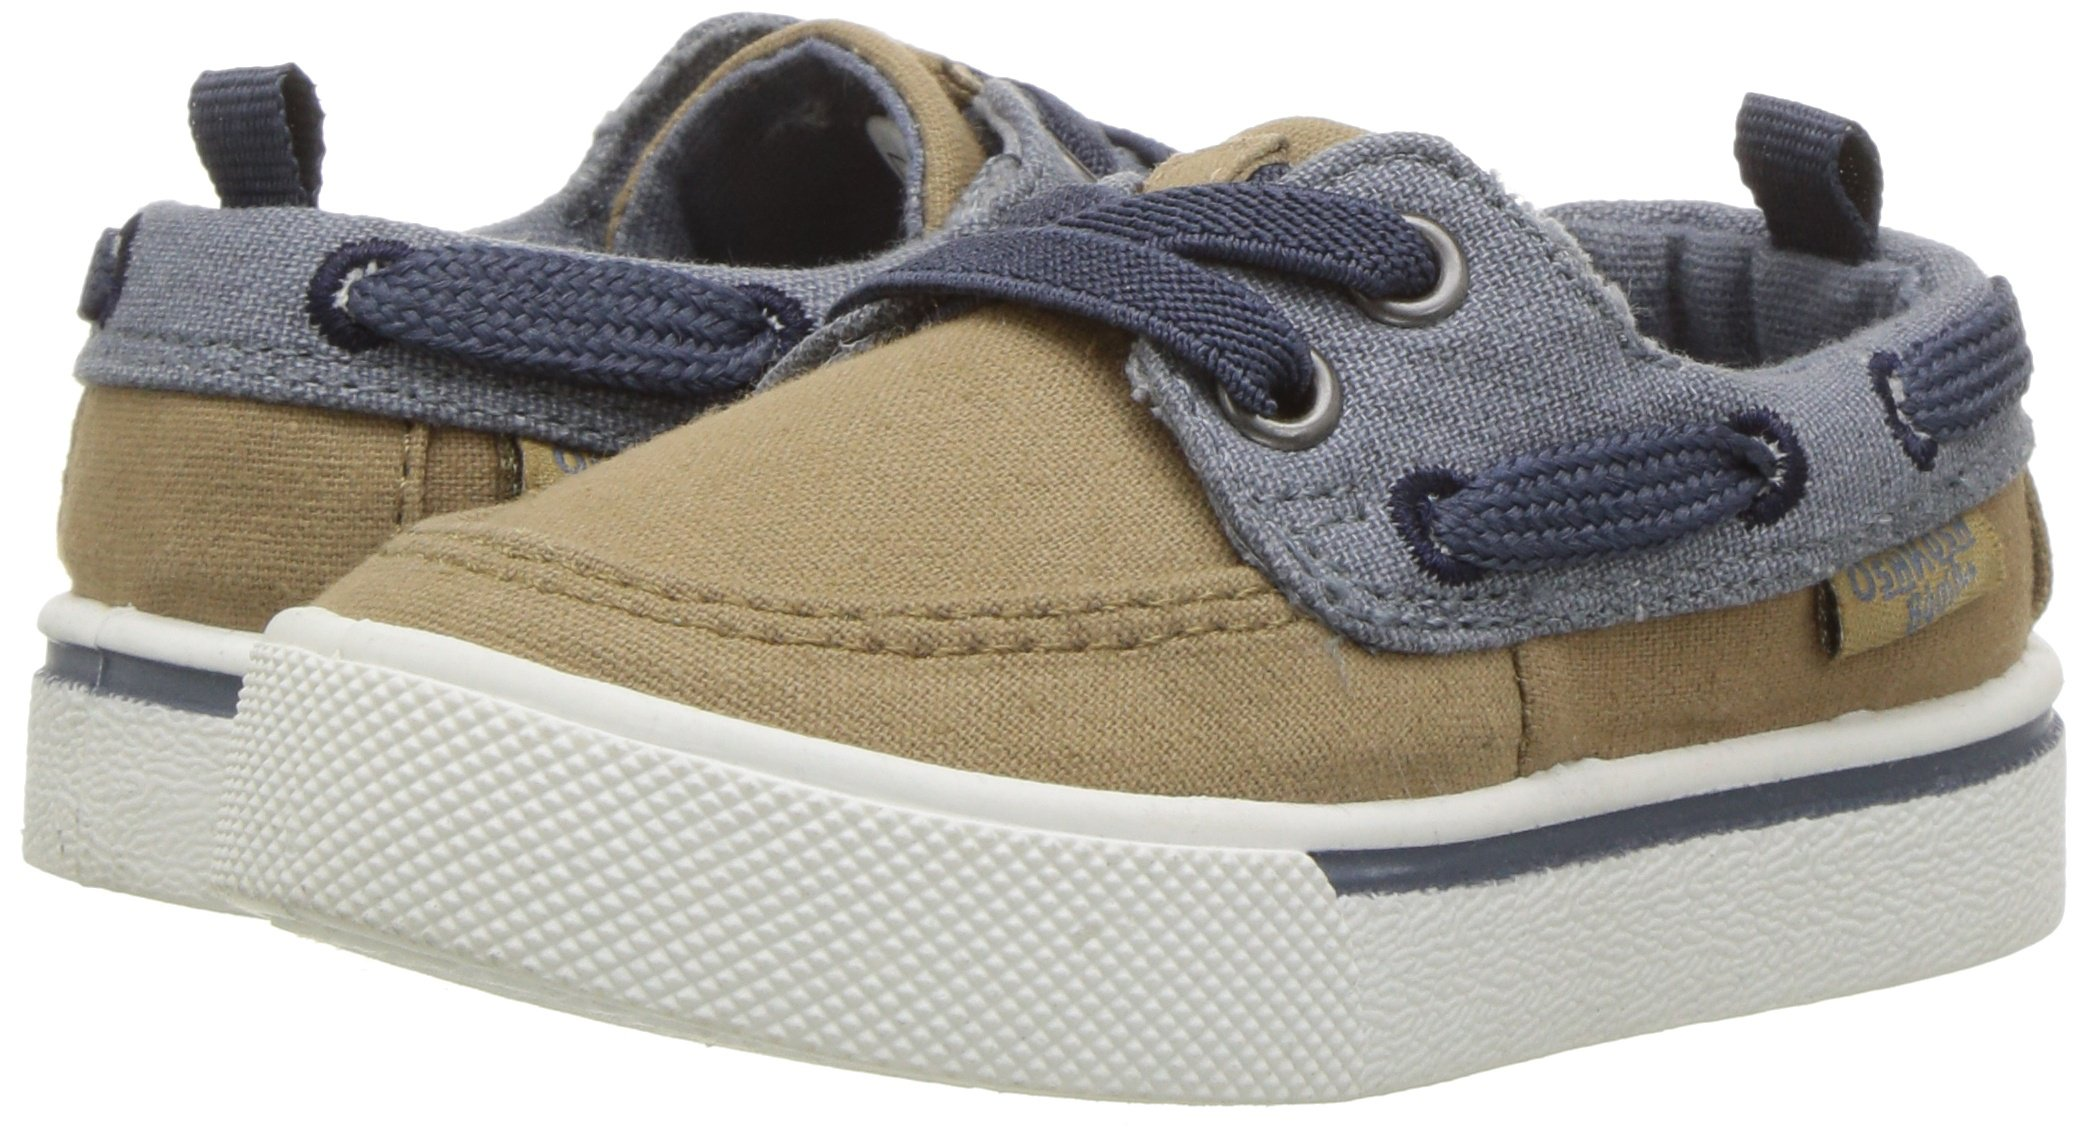 OshKosh B'Gosh Albie Boy's Boat Shoe, Khaki, 12 M US Little Kid by OshKosh B'Gosh (Image #6)